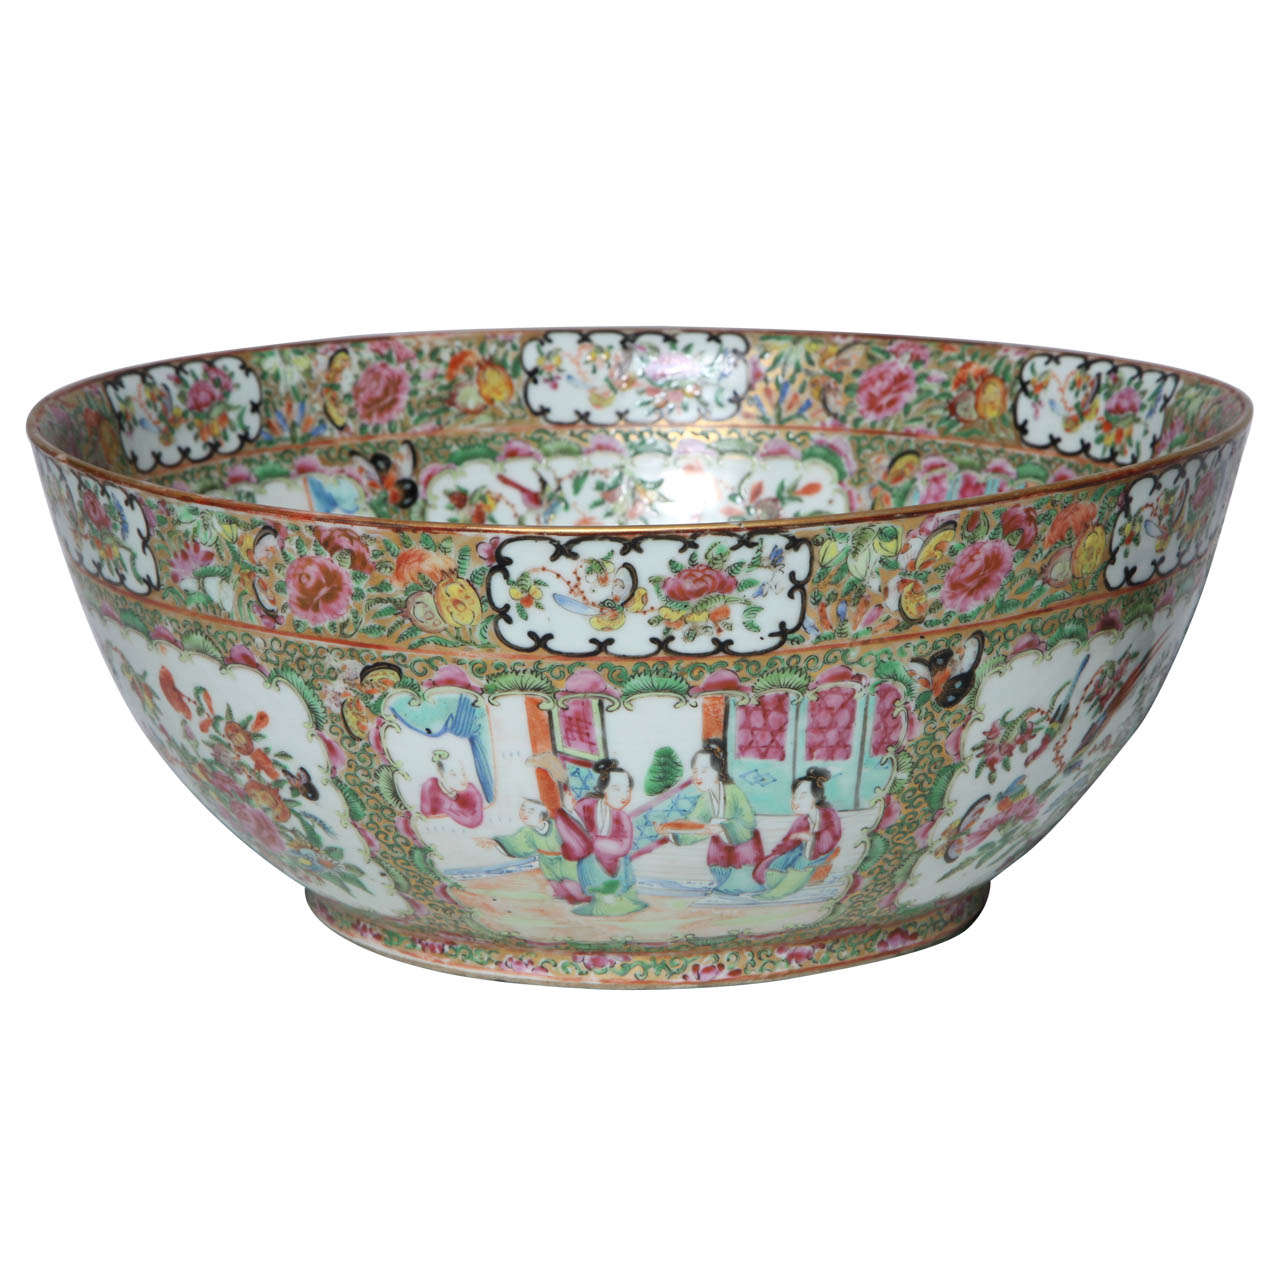 A Massive 19th c.  Chinese Export Porcelain 'Canton Famille Rose' Punchbowl